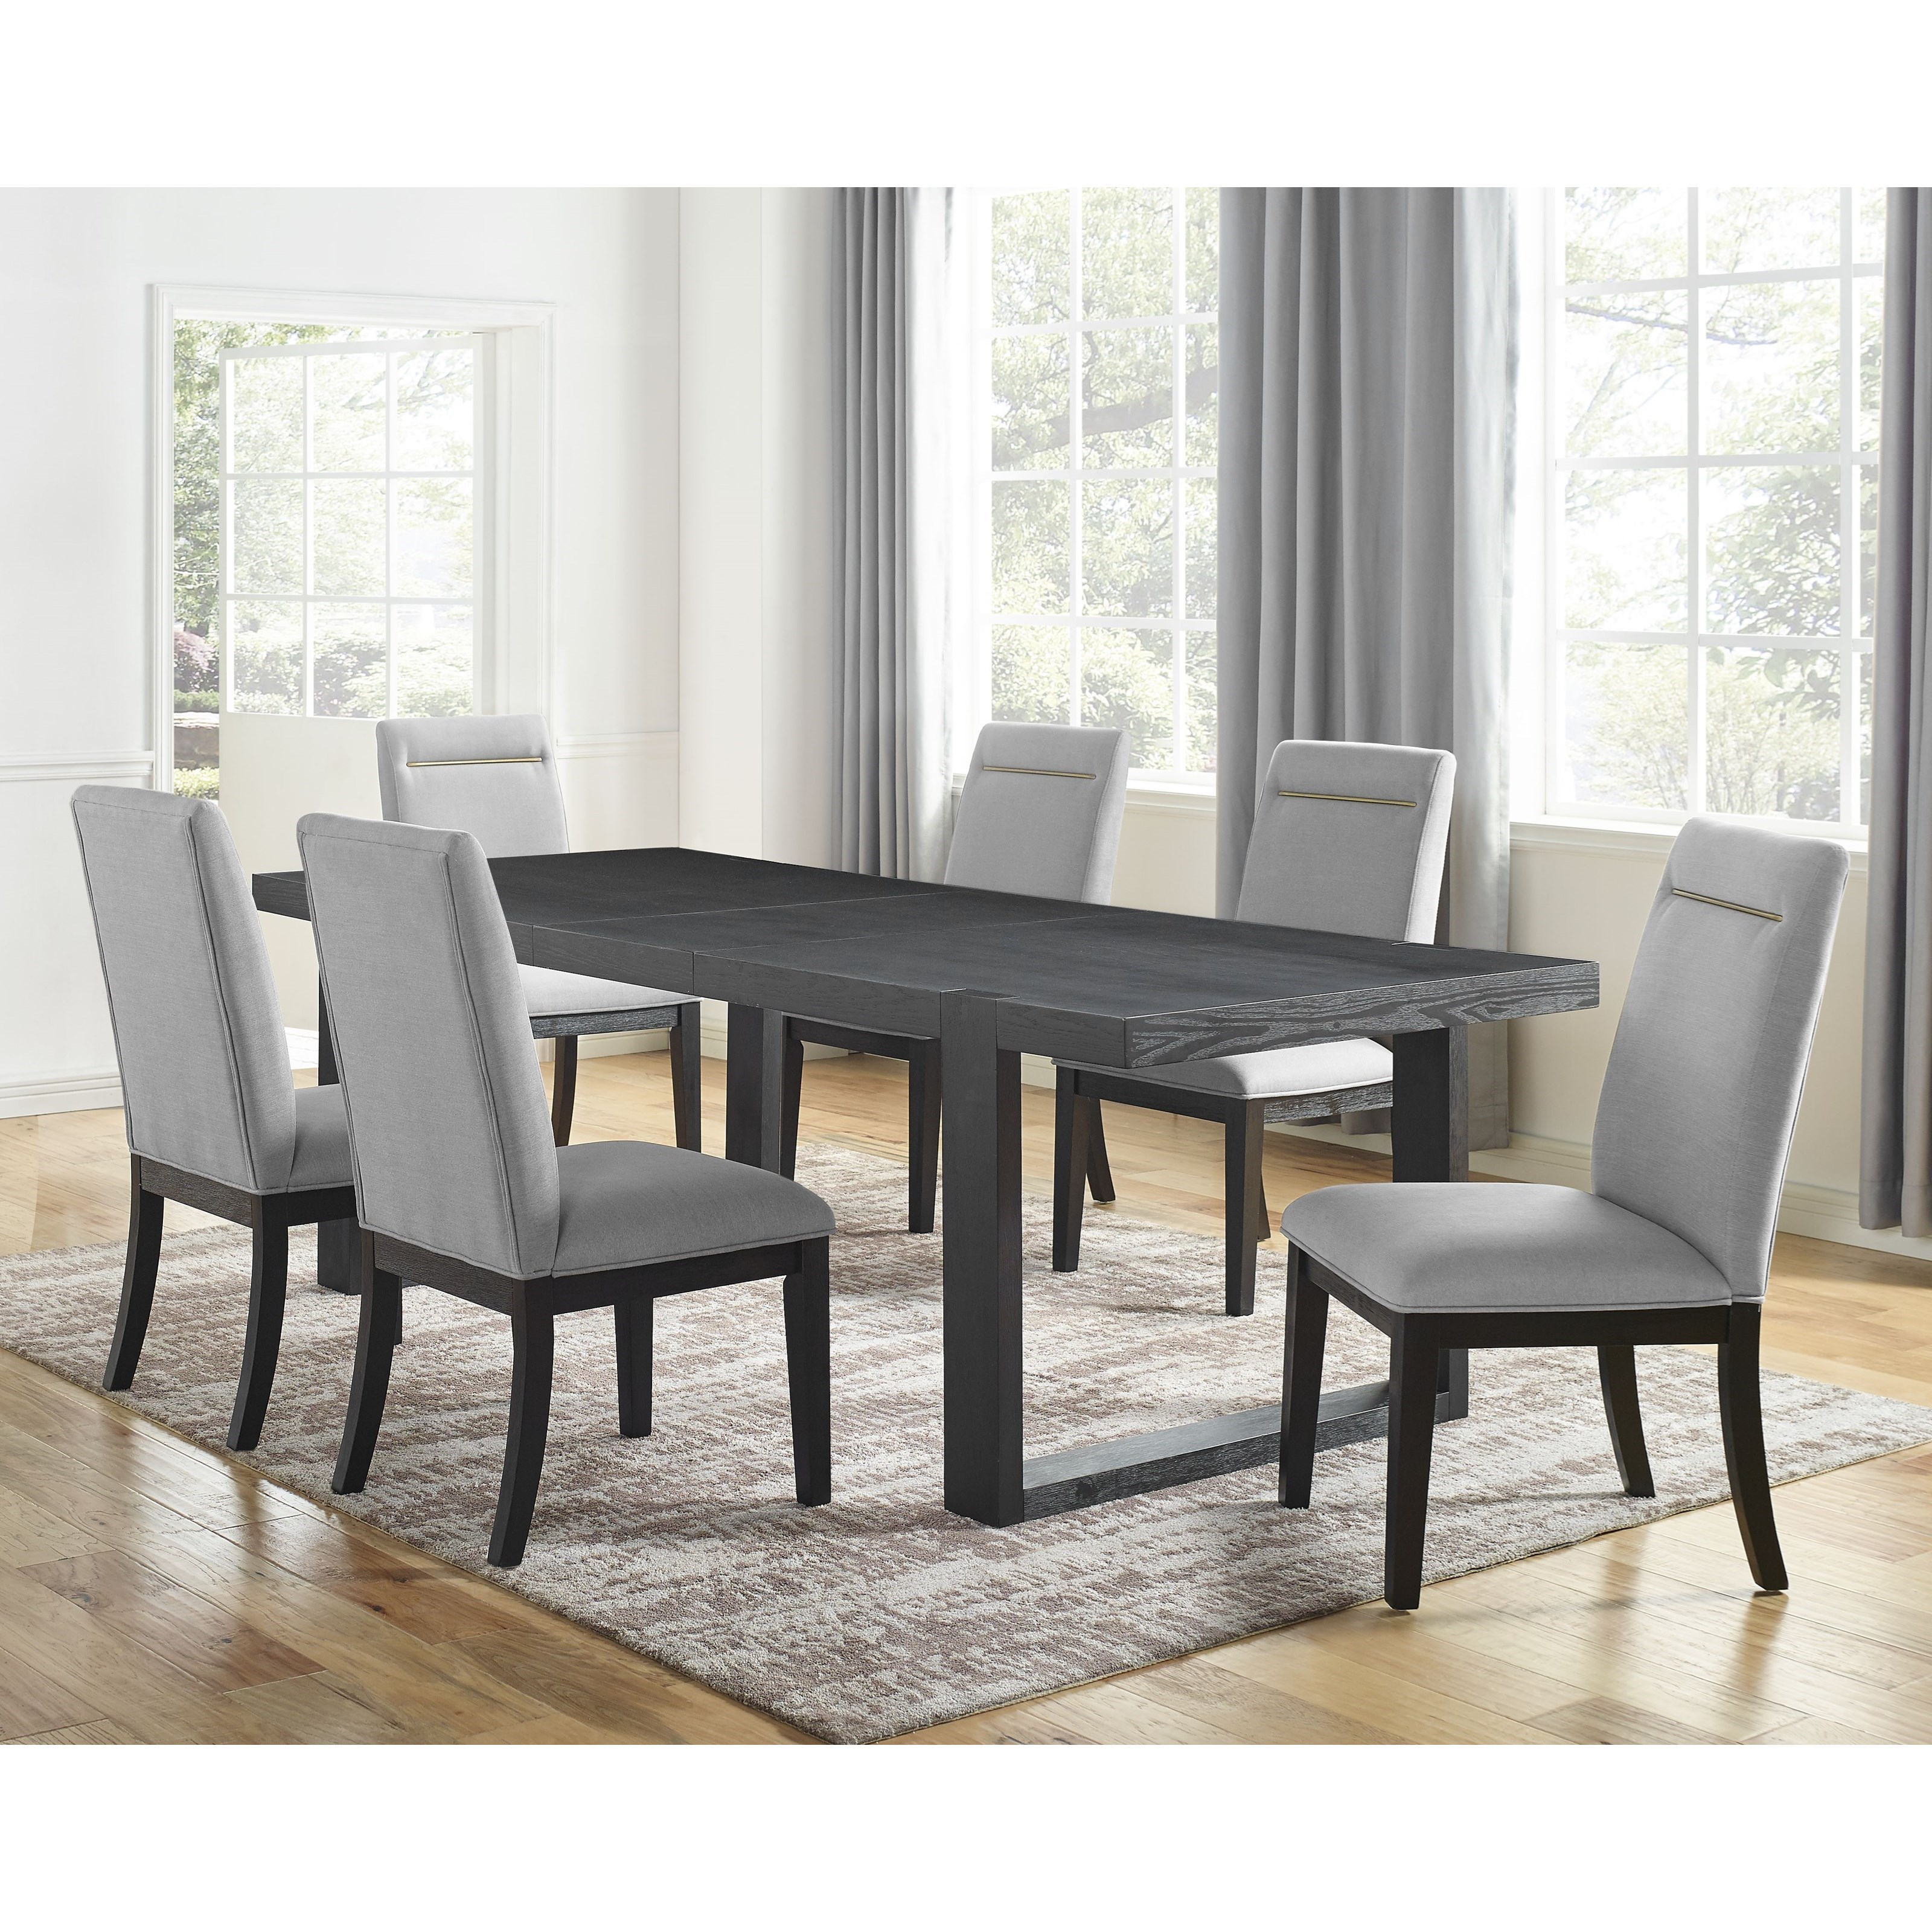 Younghouse 7-Piece Table and Chair Set at Rotmans